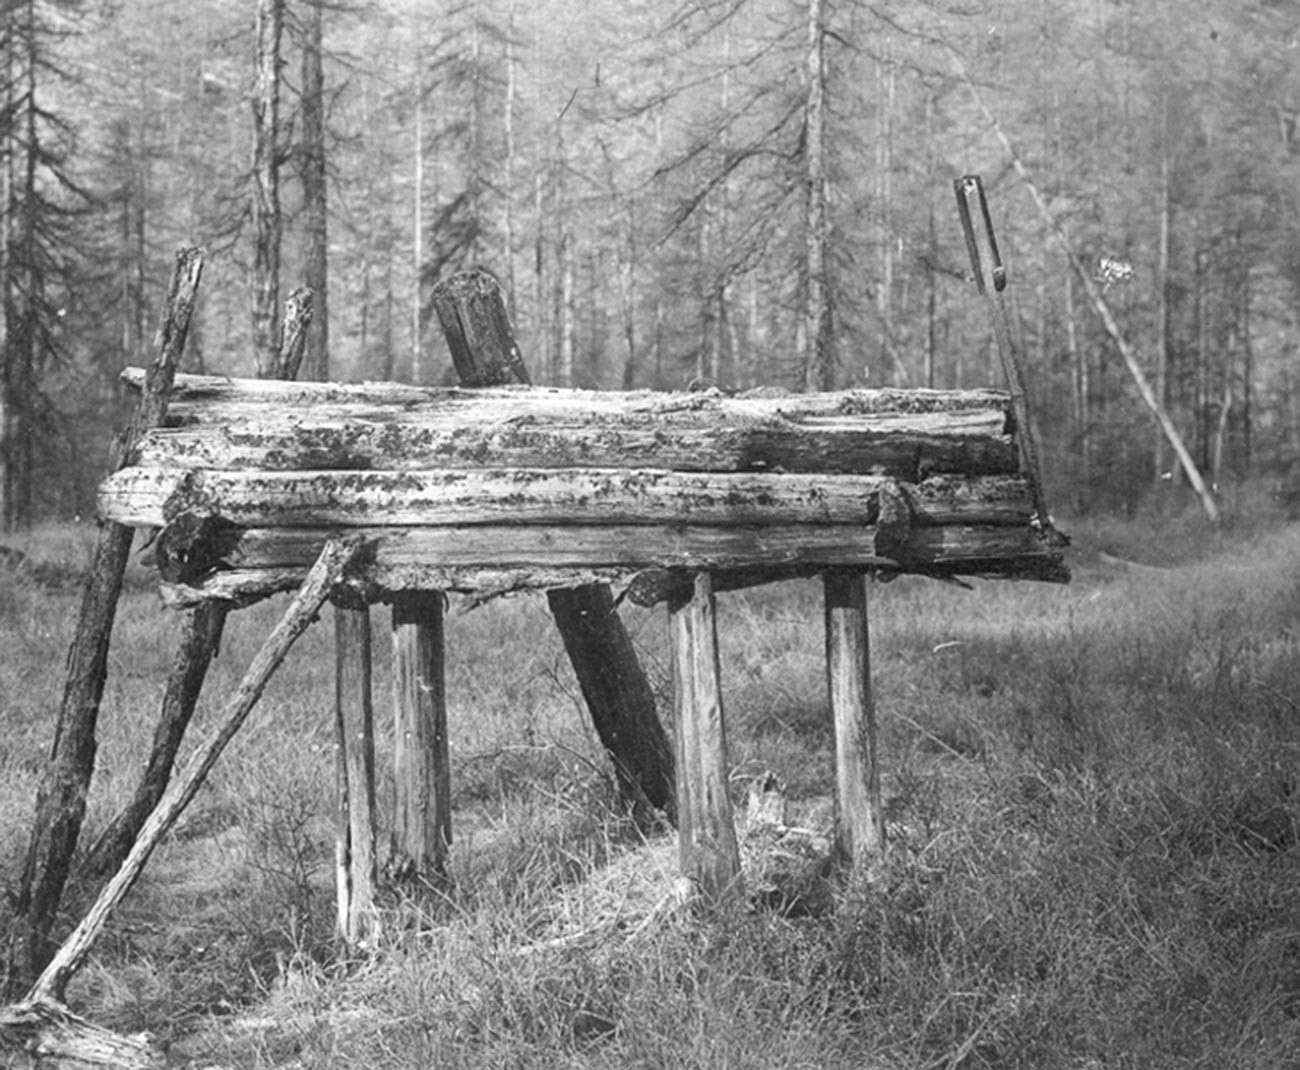 An above-the-ground burial found in a Russian forest